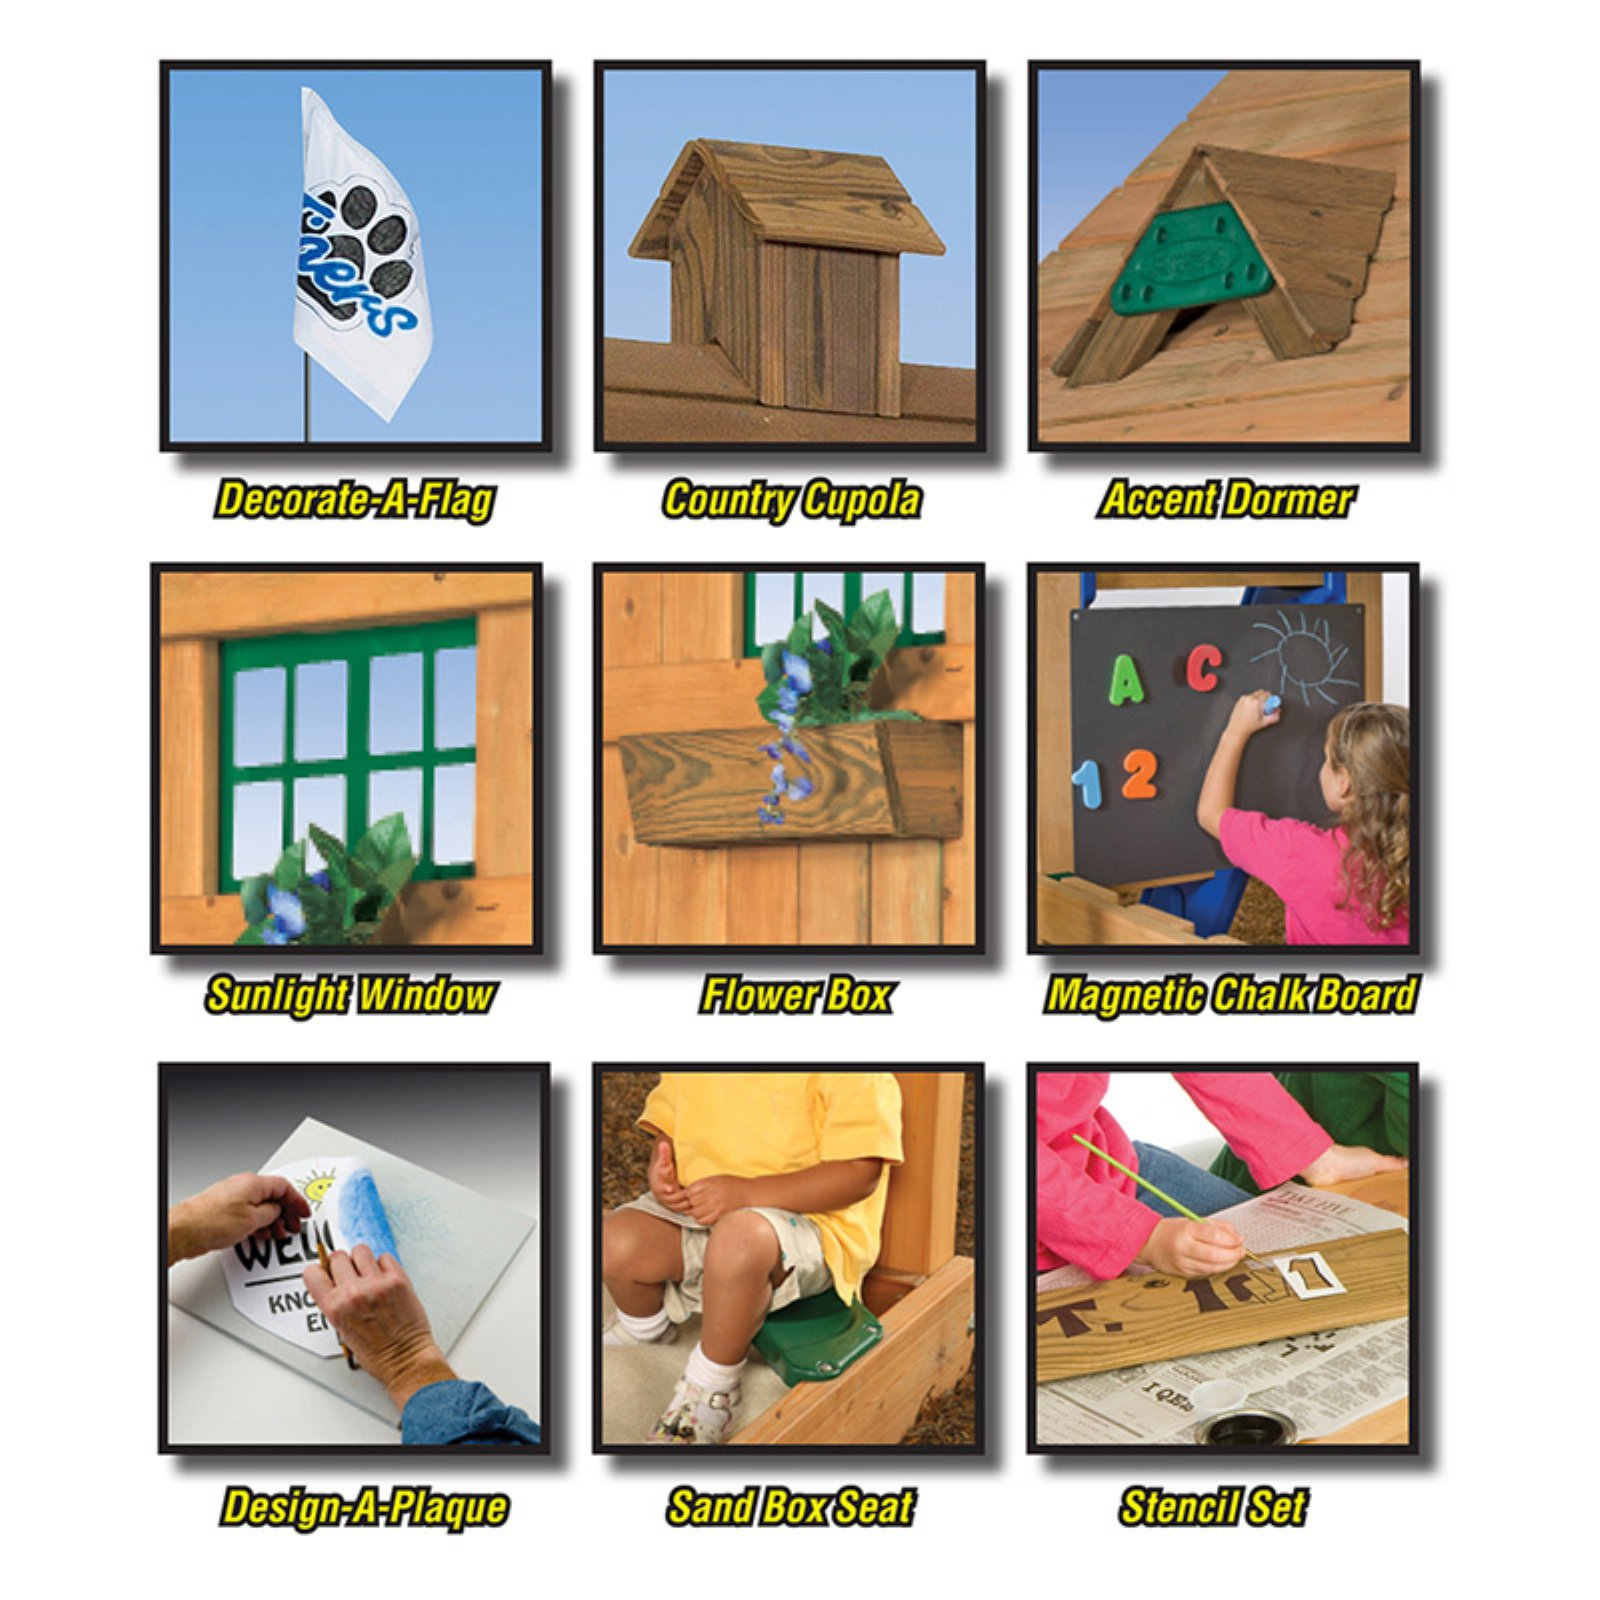 PlayStar Play Set Decorative Kit